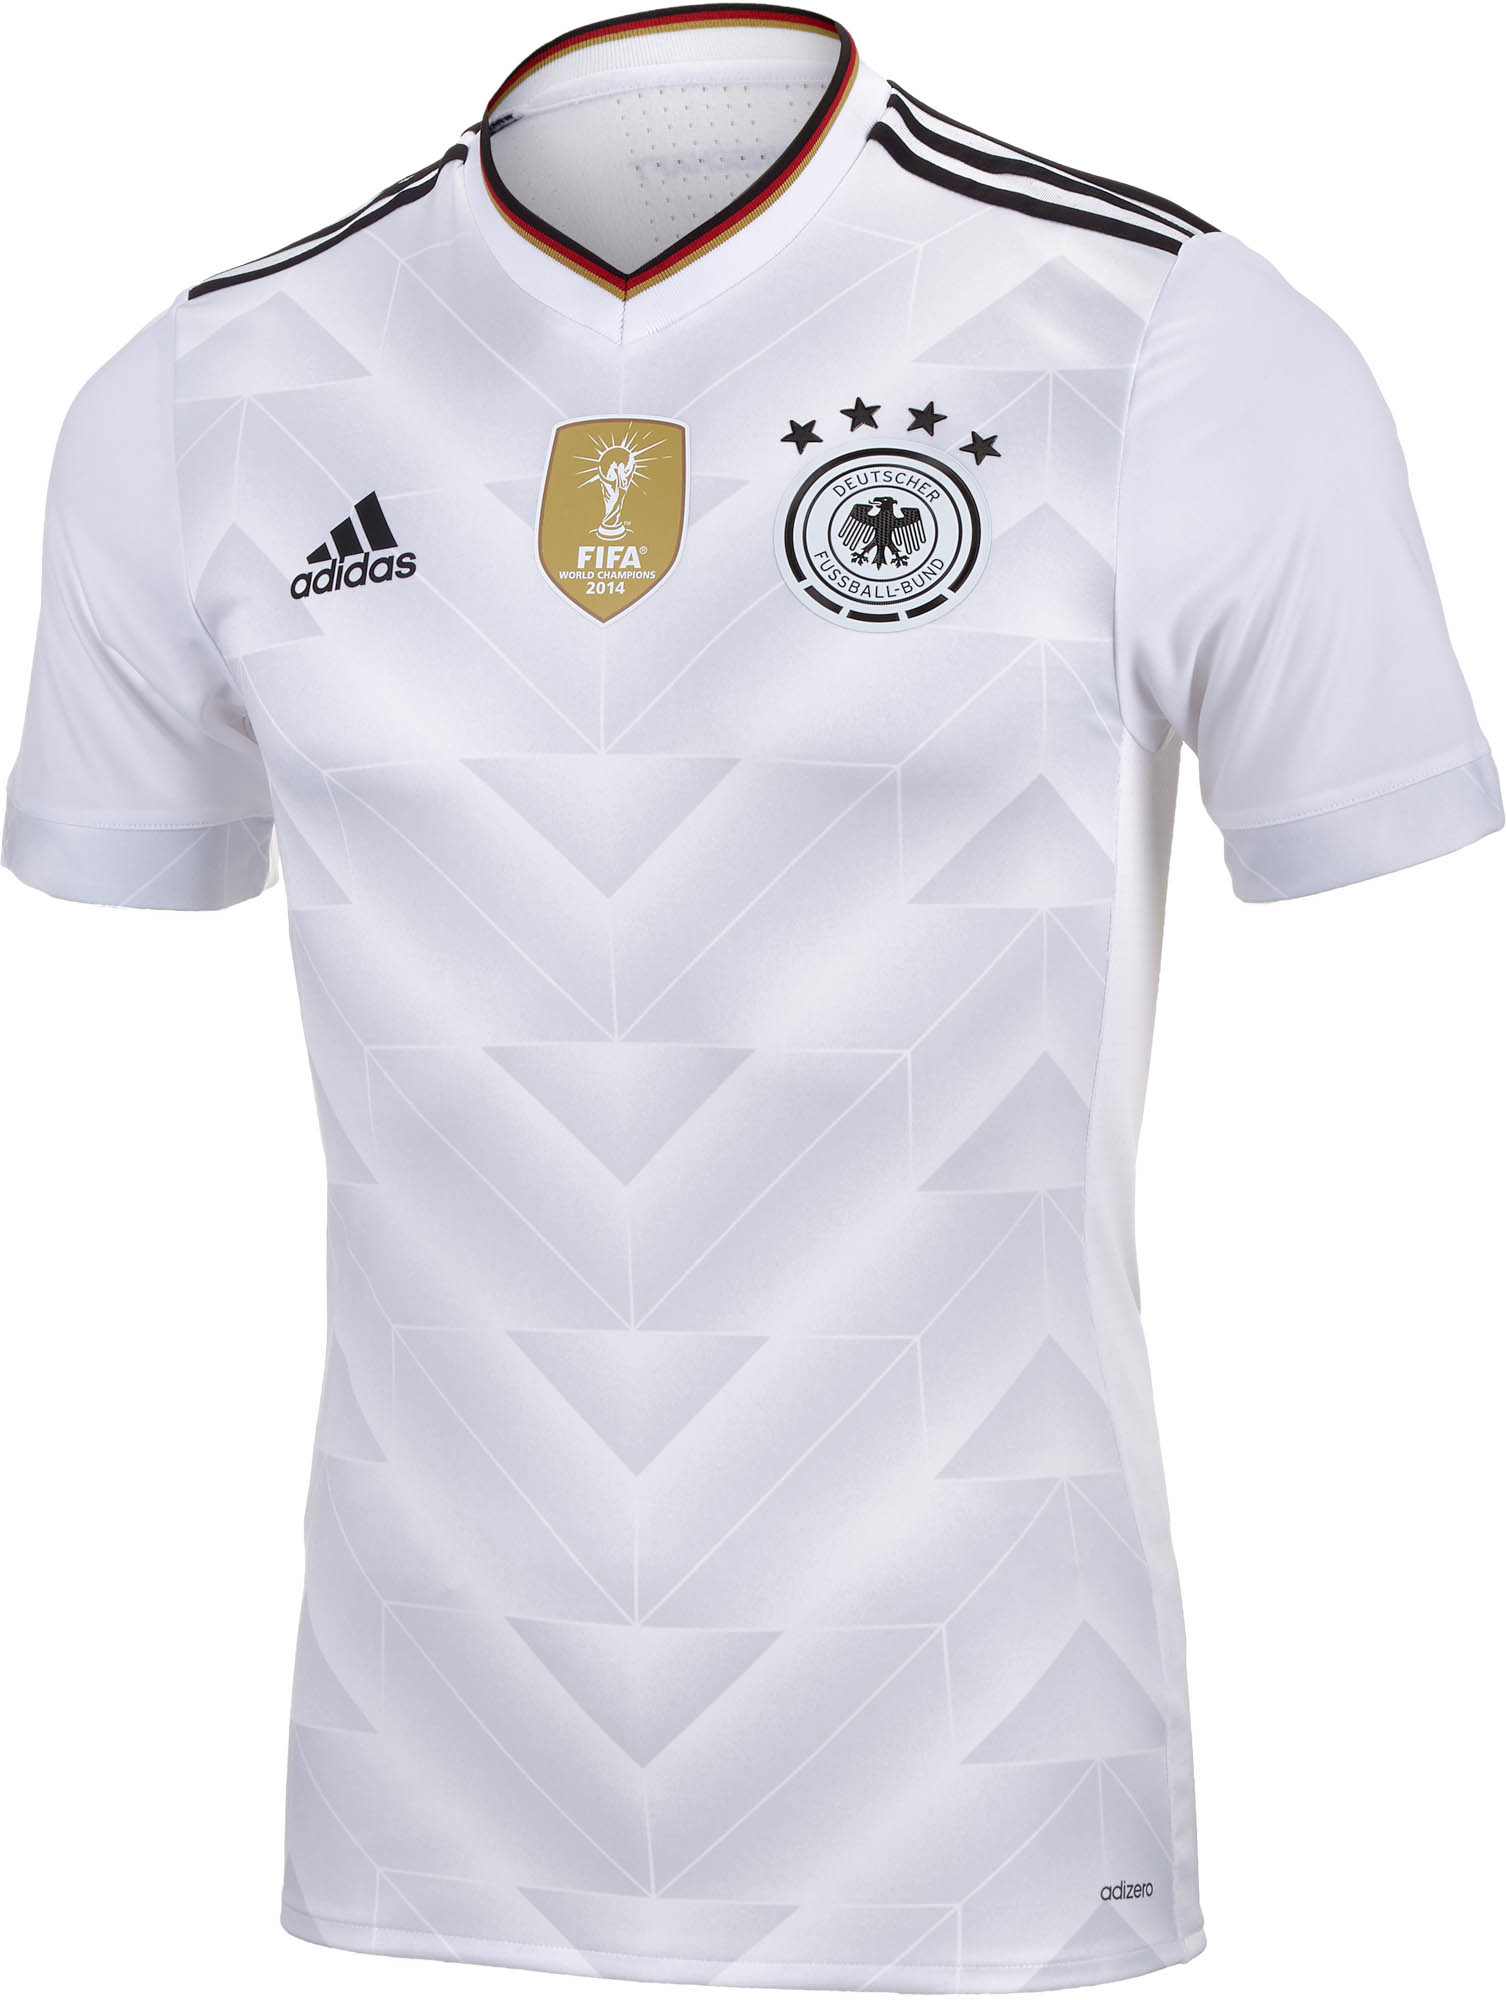 adidas 2017/18 Germany Authentic Home Soccer Jerseys - photo#46